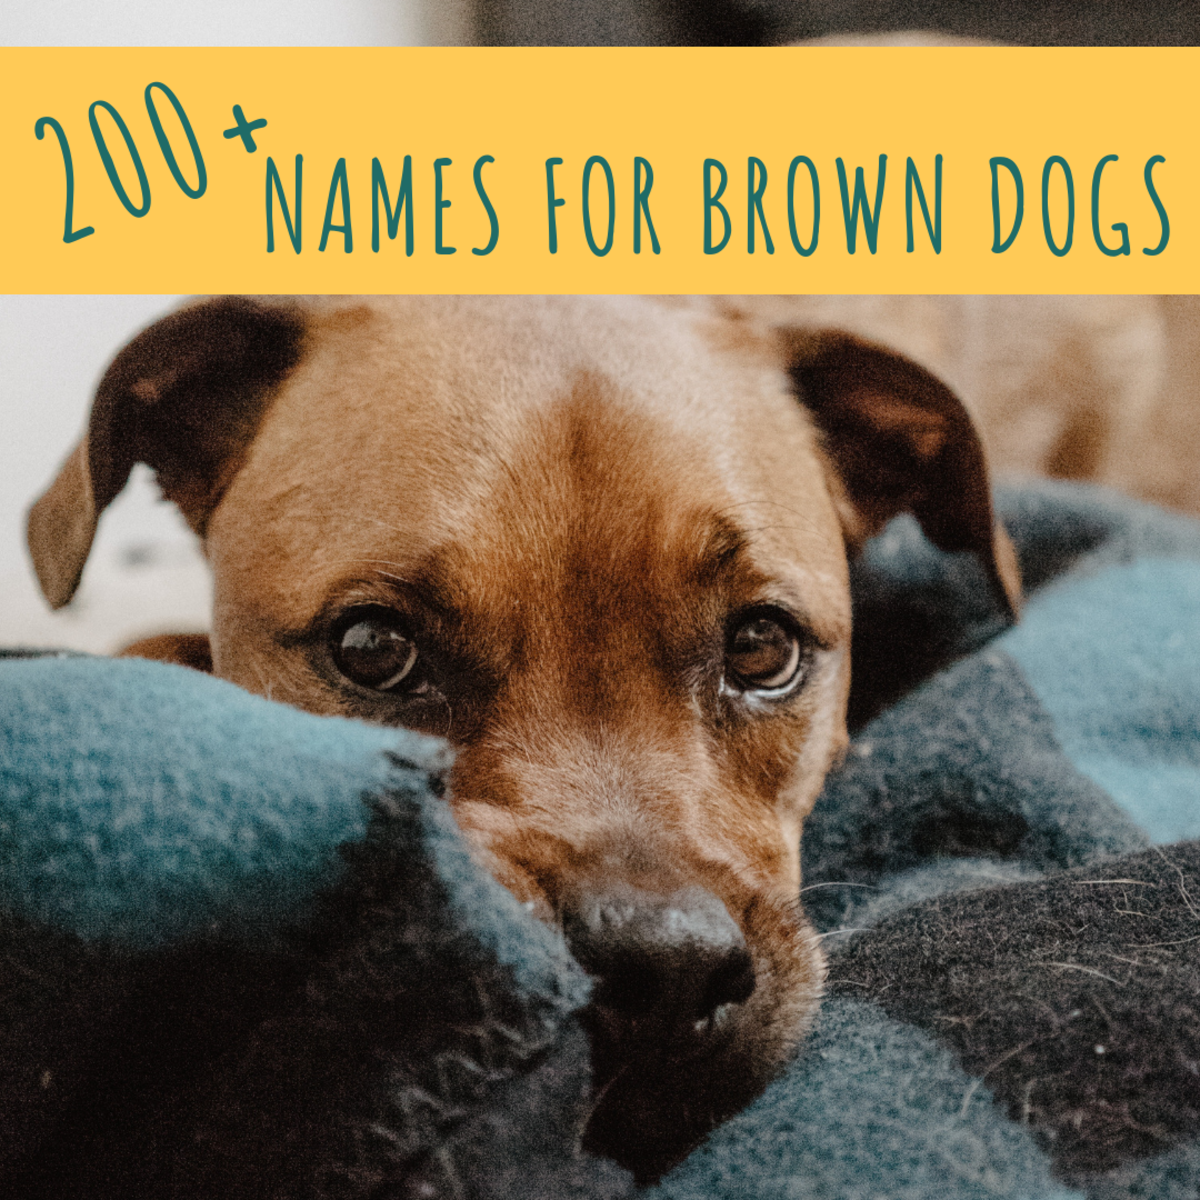 200+ Unique Brown Dog Names: Chocolate and Golden-Brown